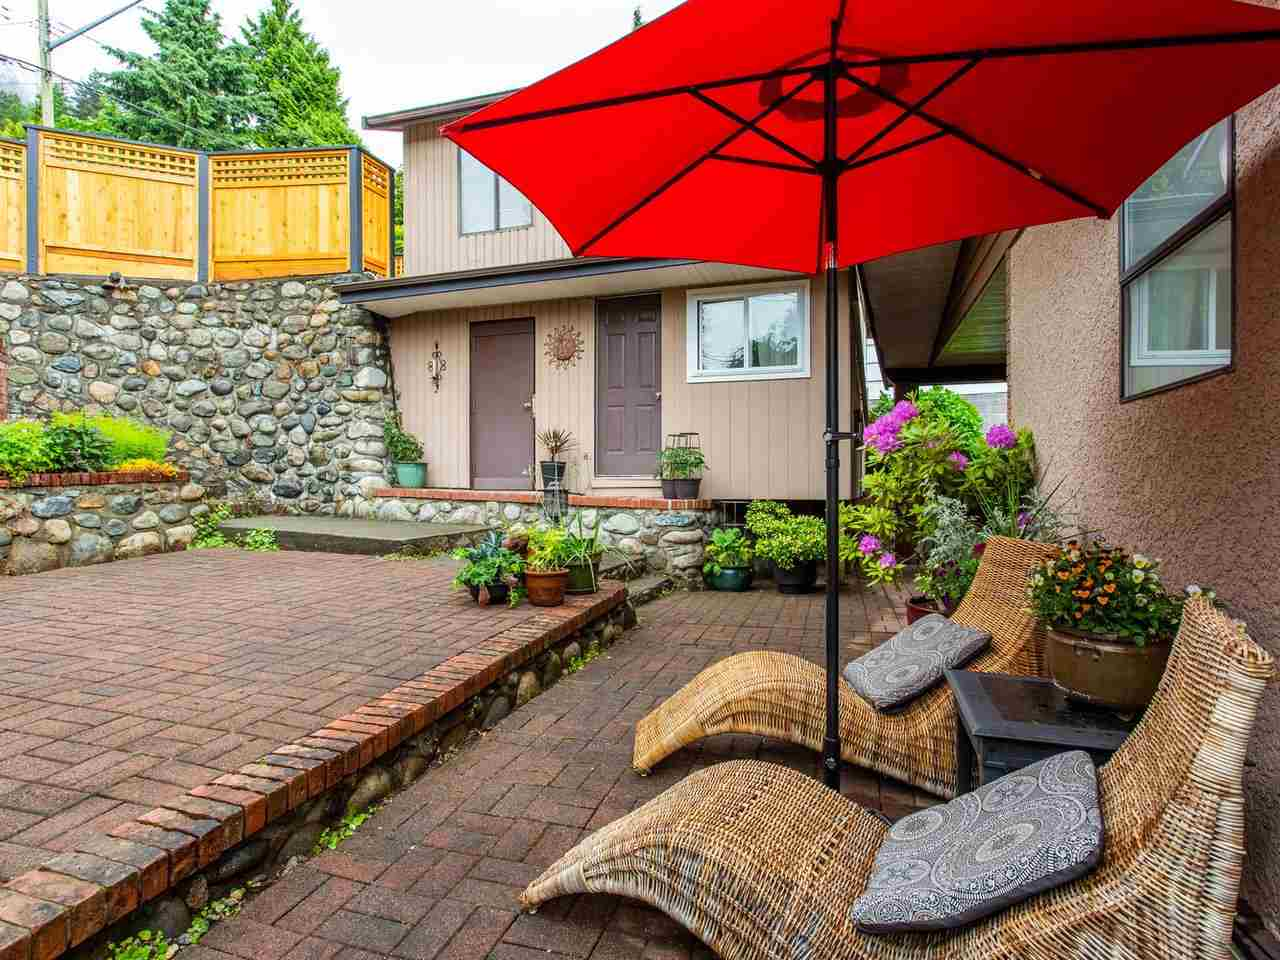 2248 CALEDONIA AVENUE - Deep Cove House/Single Family for sale, 6 Bedrooms (R2459764) - #1